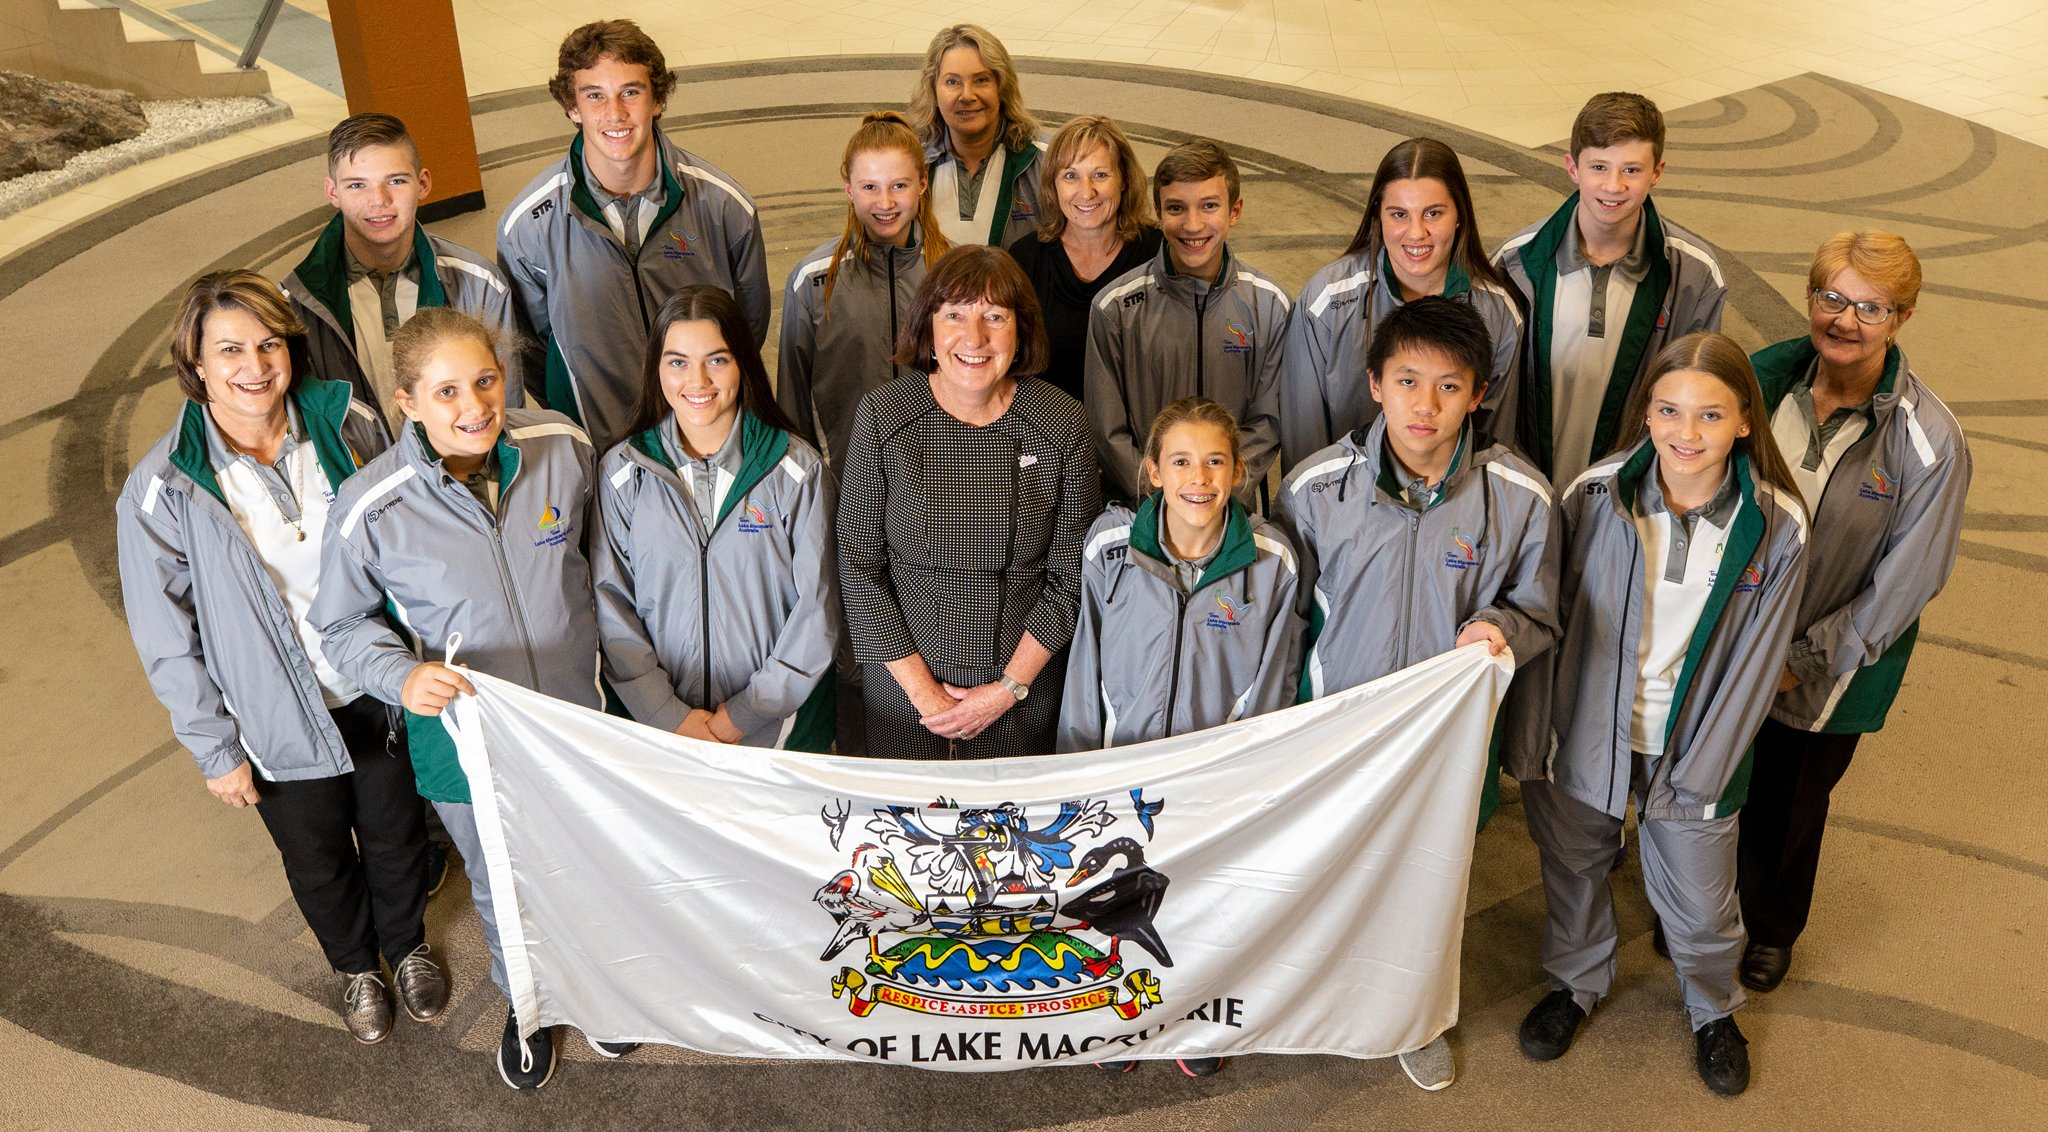 The search is on for junior athletes to represent Lake Macquarie next year at the world's largest multi-sports youth games competition.